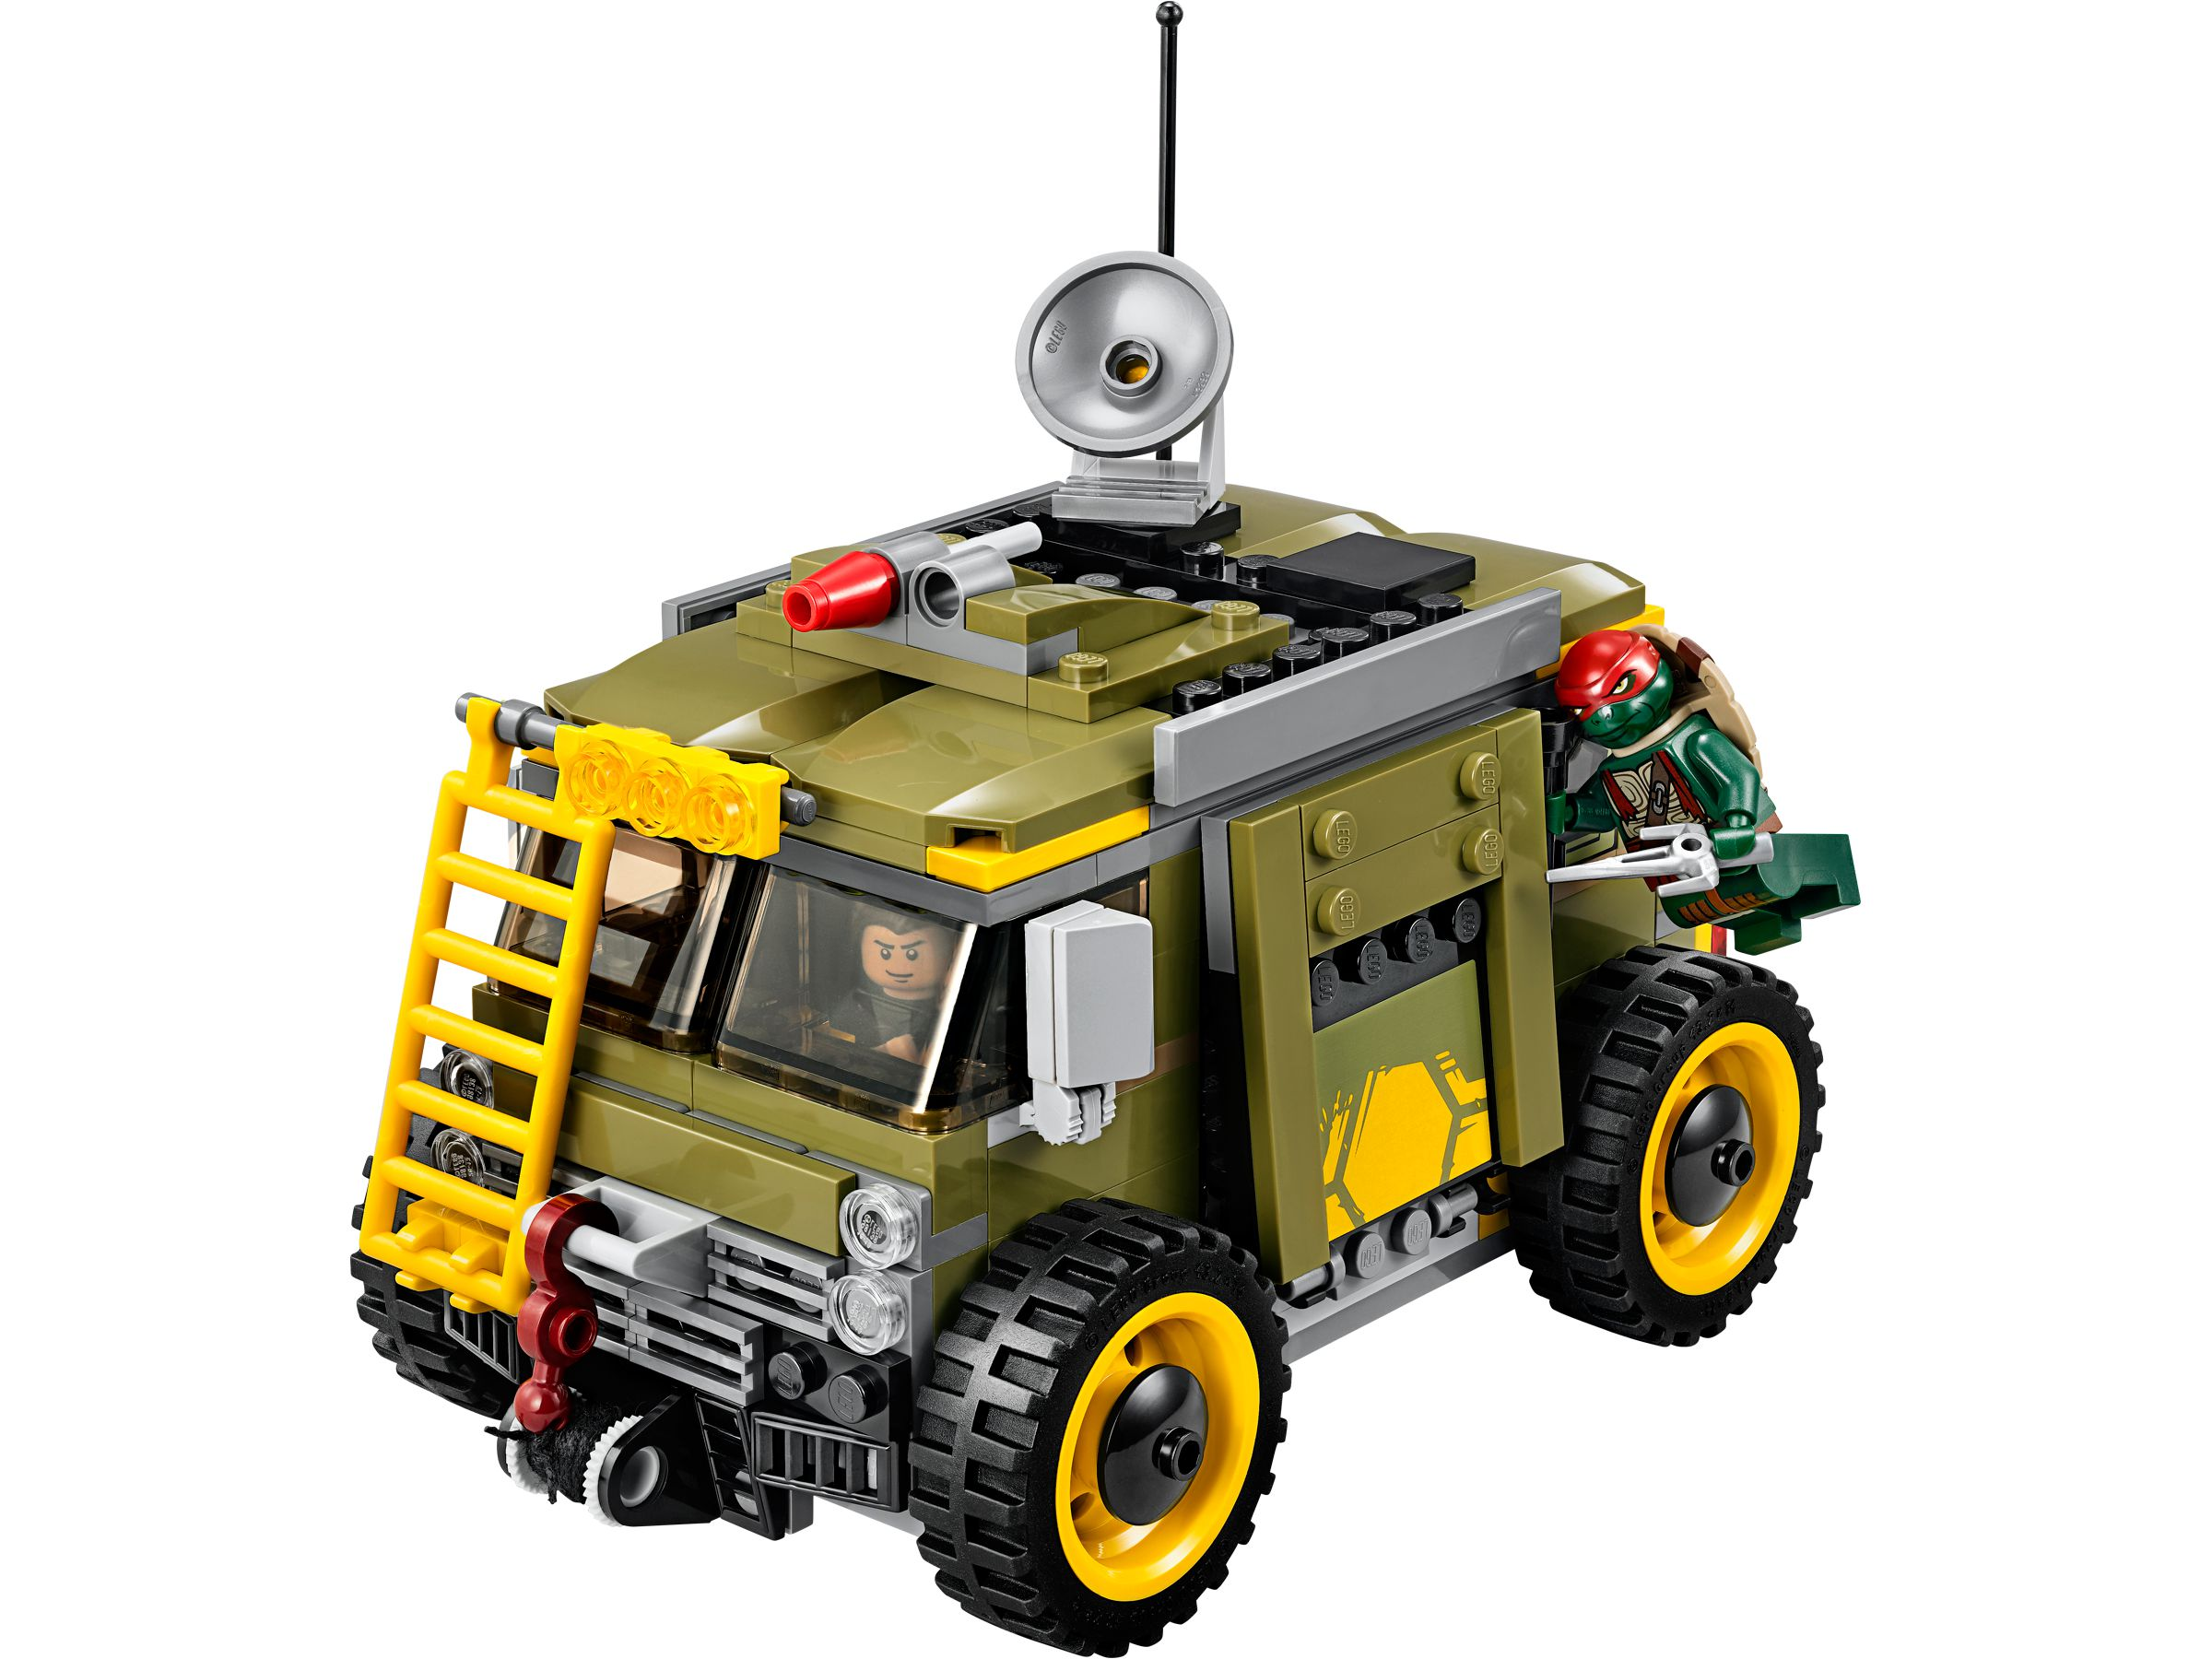 LEGO Teenage Mutant Ninja Turtles 79115 Turtle Van LEGO_79115_alt2.jpg